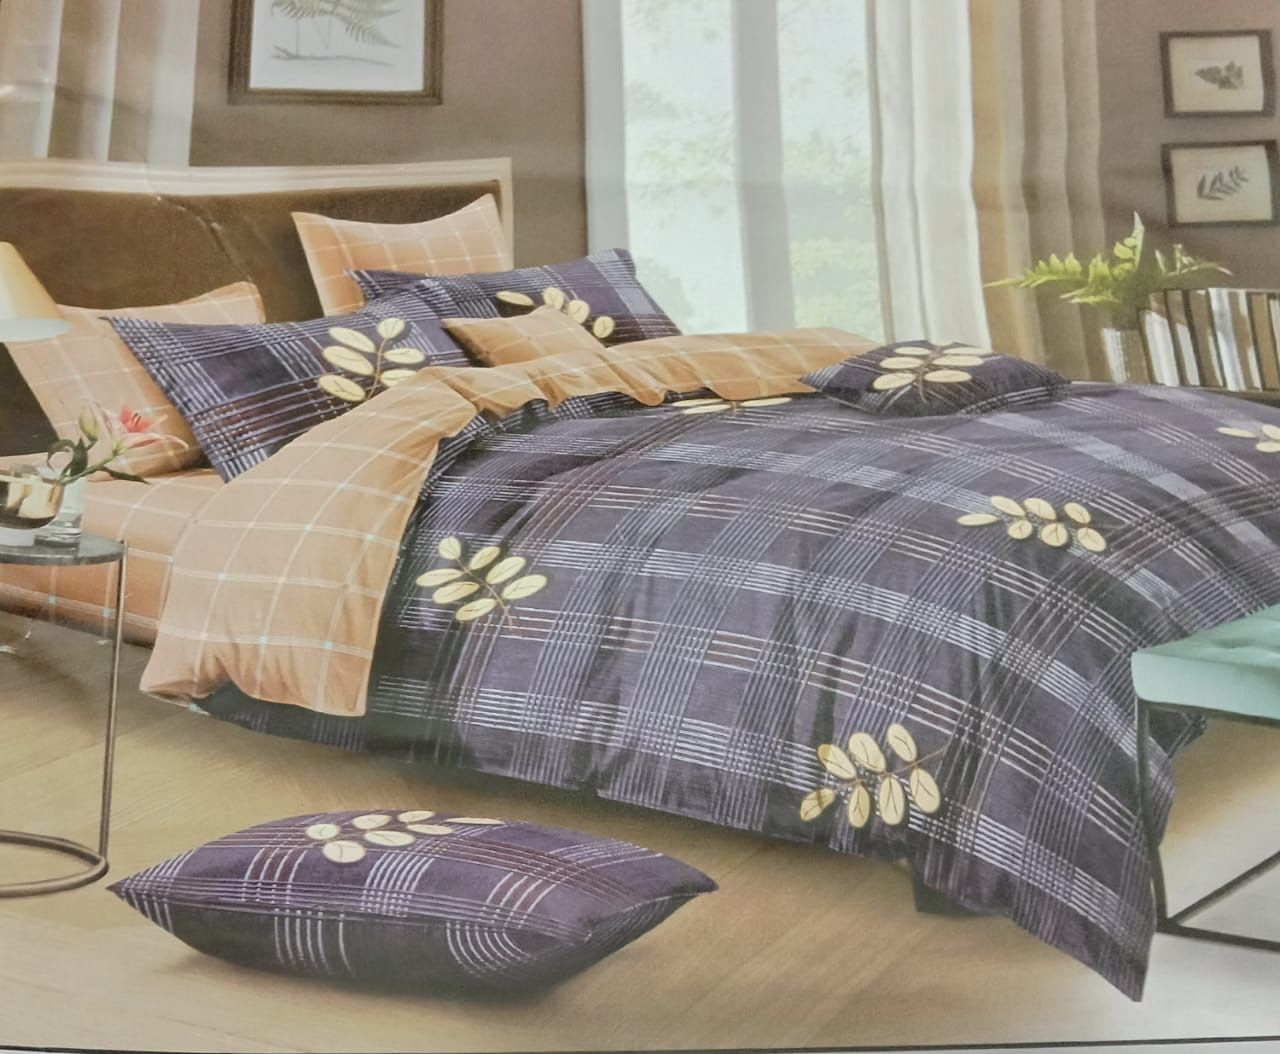 Theexportworld Com Is Wholesale Comforter And Bedding Manufacturer